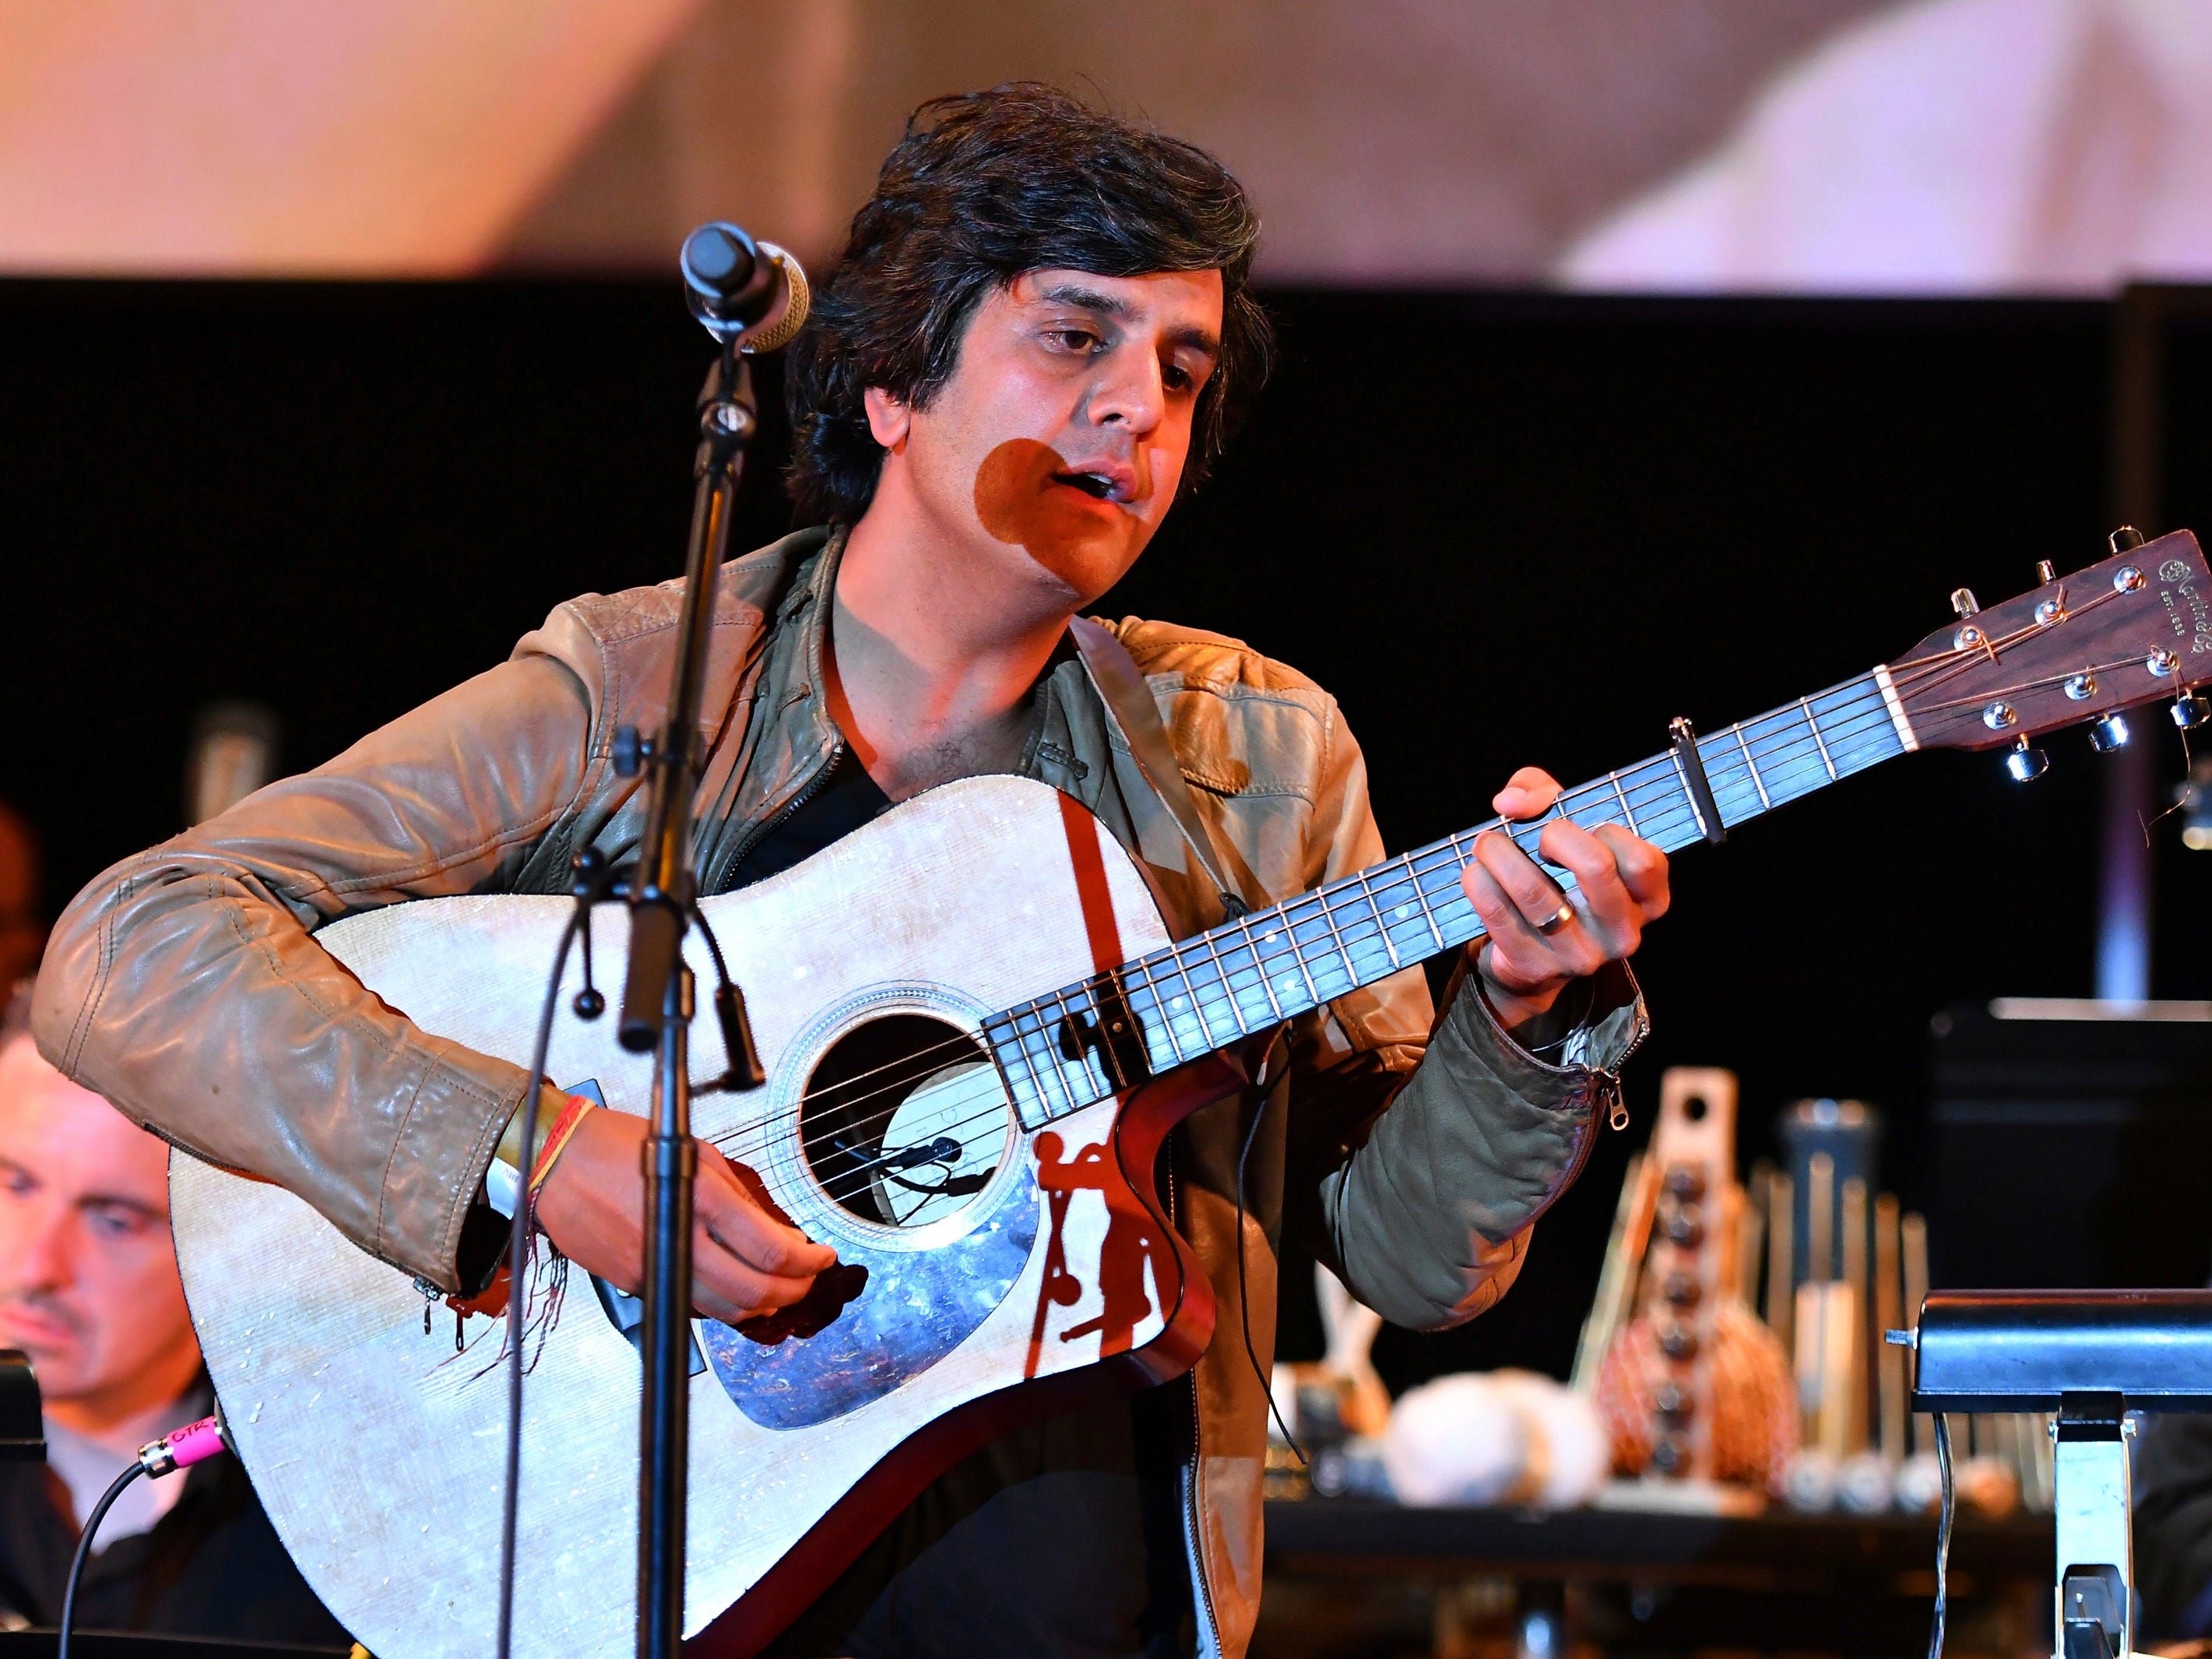 Composer Siddhartha Khosla performs the score from This Is Us during WORDS + MUSIC, presented Thursday, June 29, 2017 at the Television Academy's Wolf Theatre at the Saban Media Center in North Hollywood, Calif. (Photo by Vince Bucci/Invision for the Television Academy/AP Images)